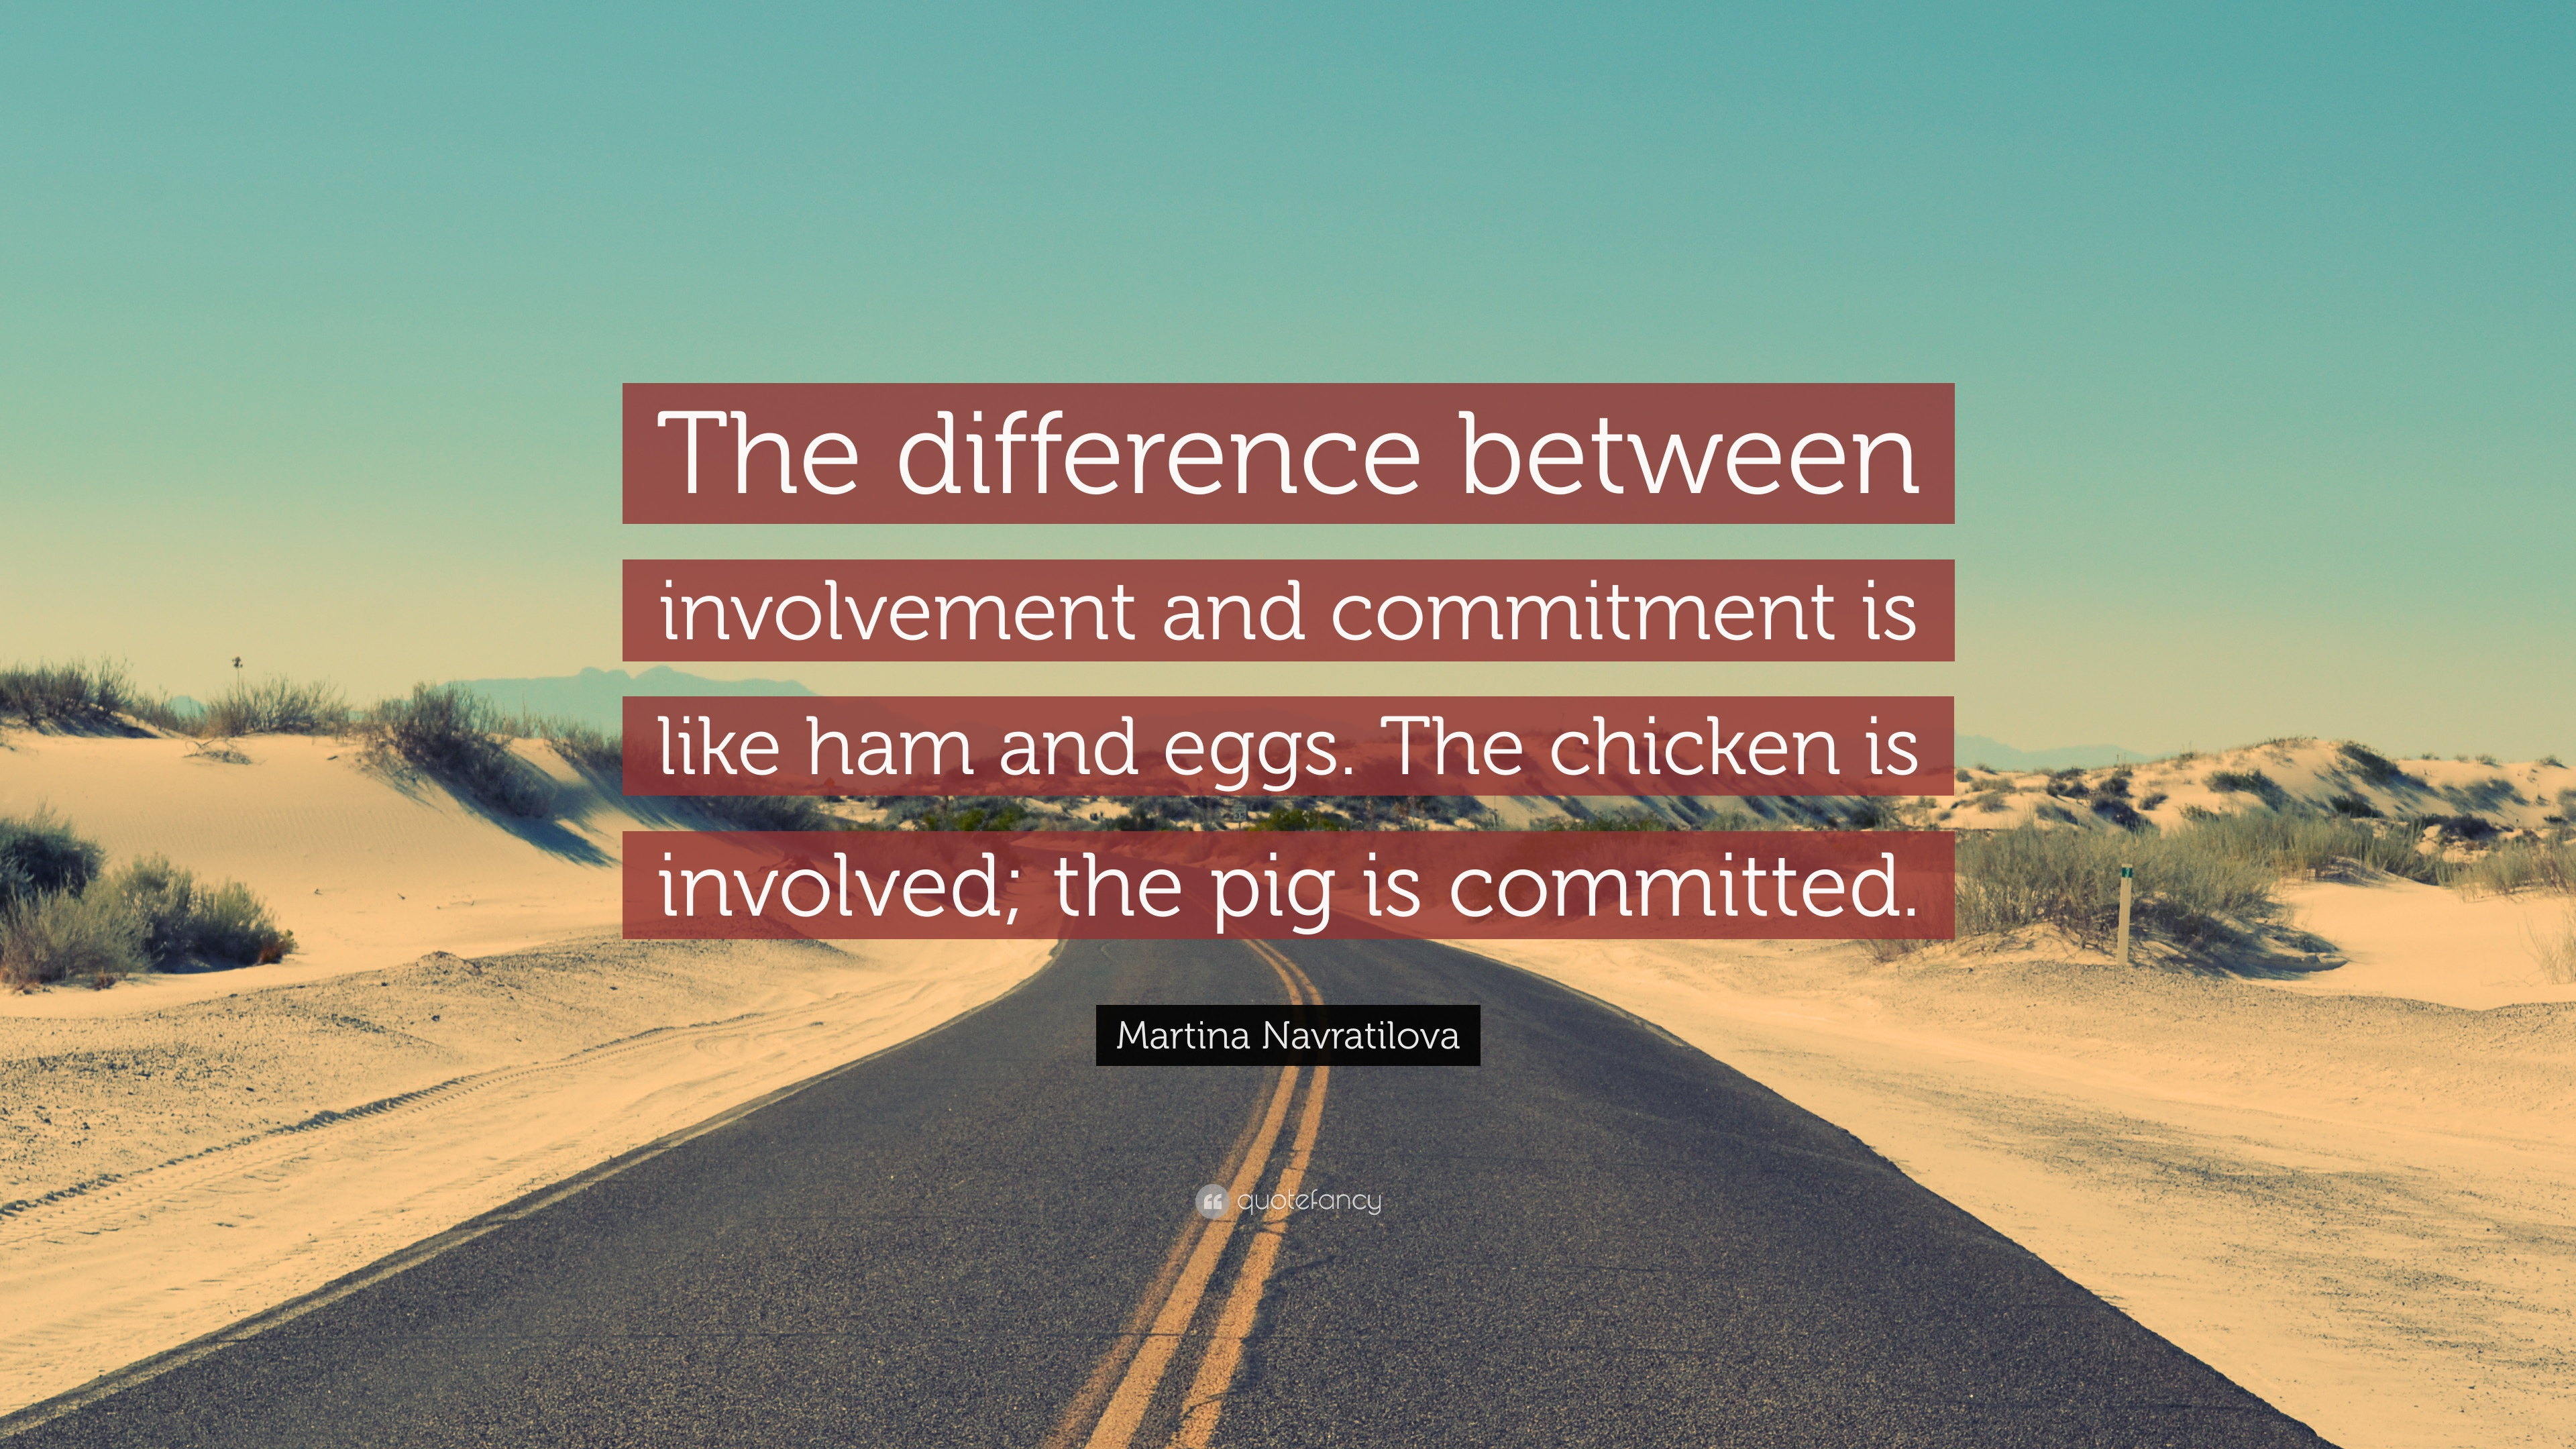 Commitment Chicken Pig Bacon Eggs: Martina Navratilova Quotes (52 Wallpapers)